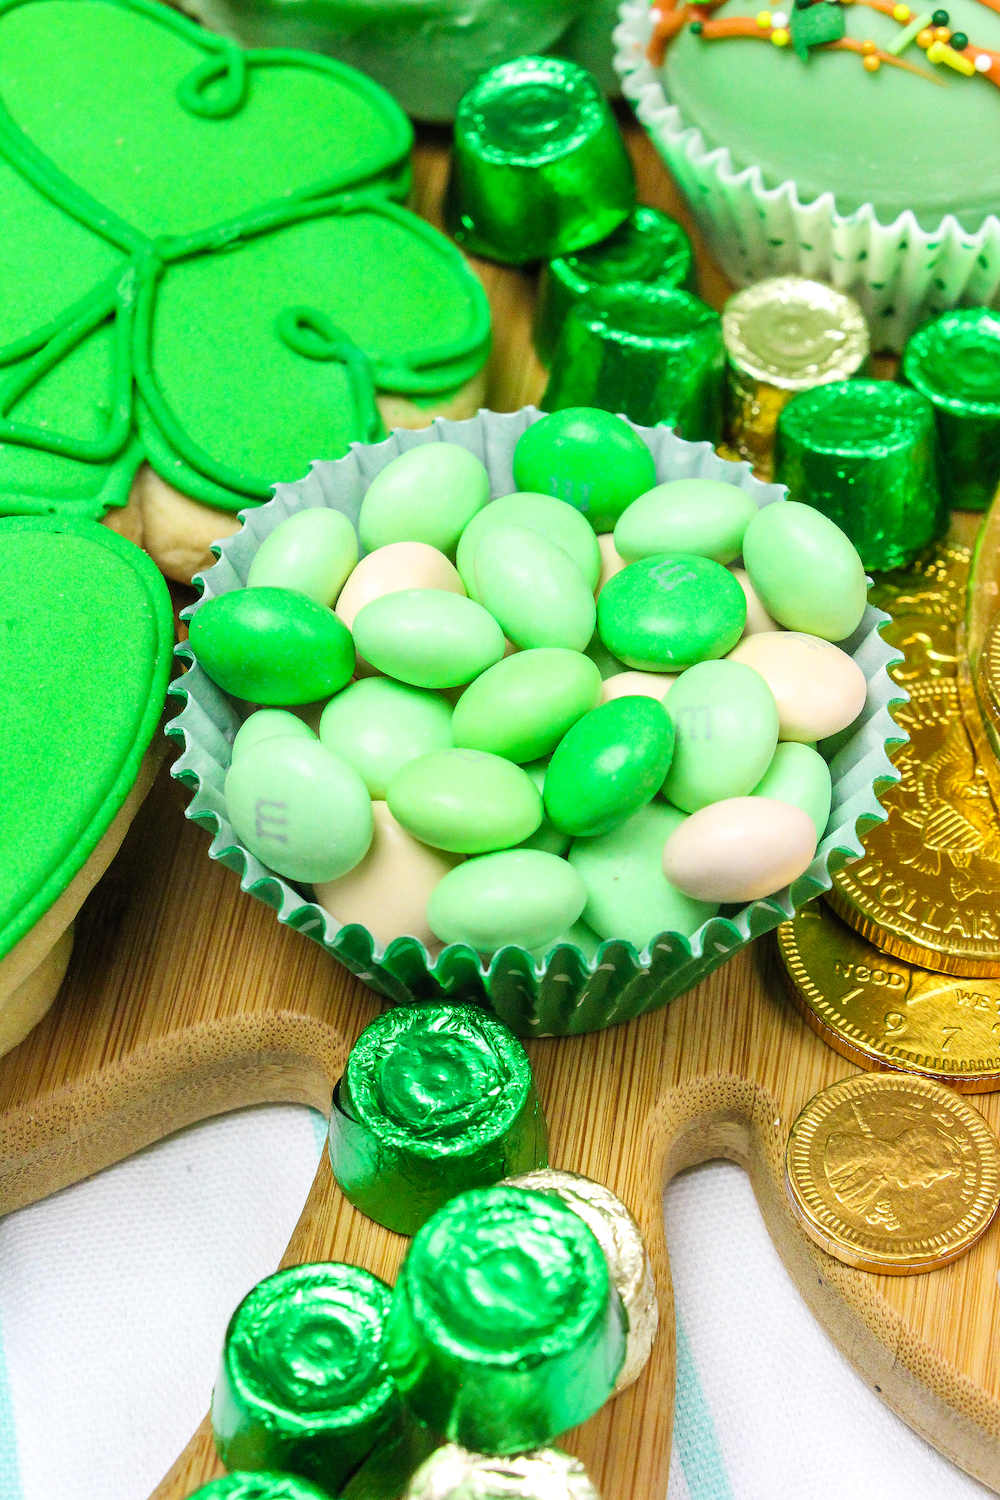 Green M&M's candy